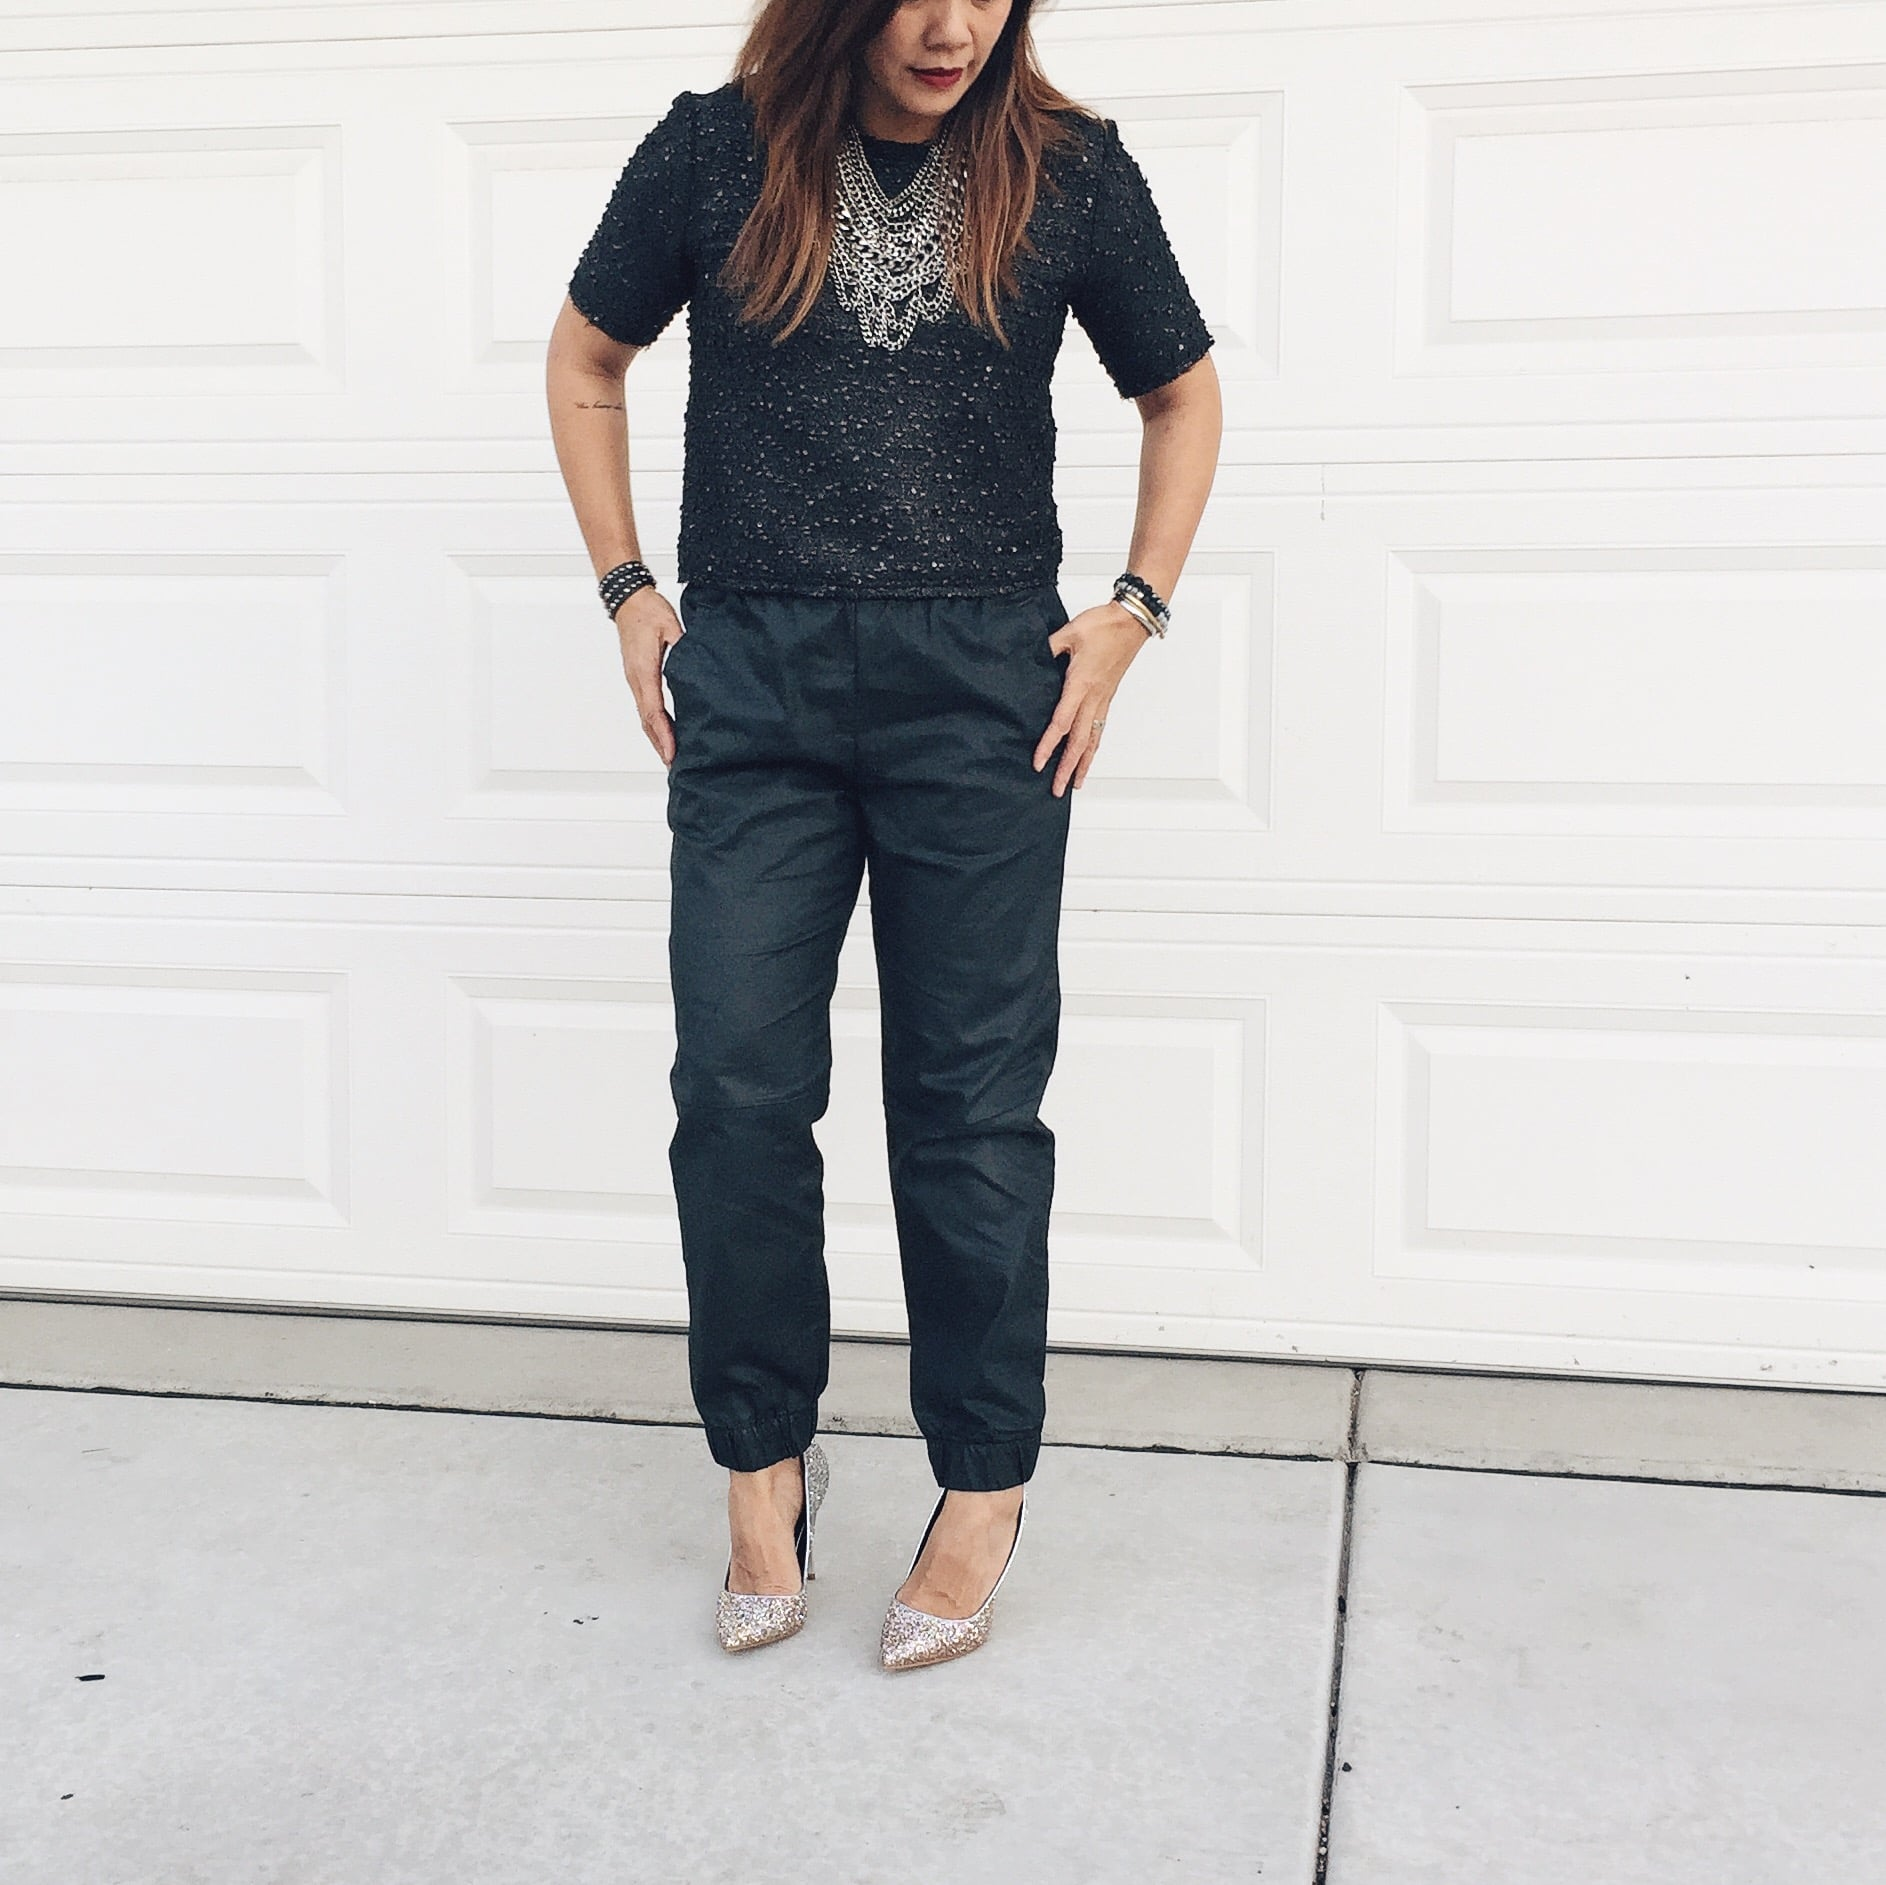 Nordstrom top (similar  here)  - Gap pants (similar  here ) - Bauble Bar  statement necklace  - Nordstrom pumps (similar  here )